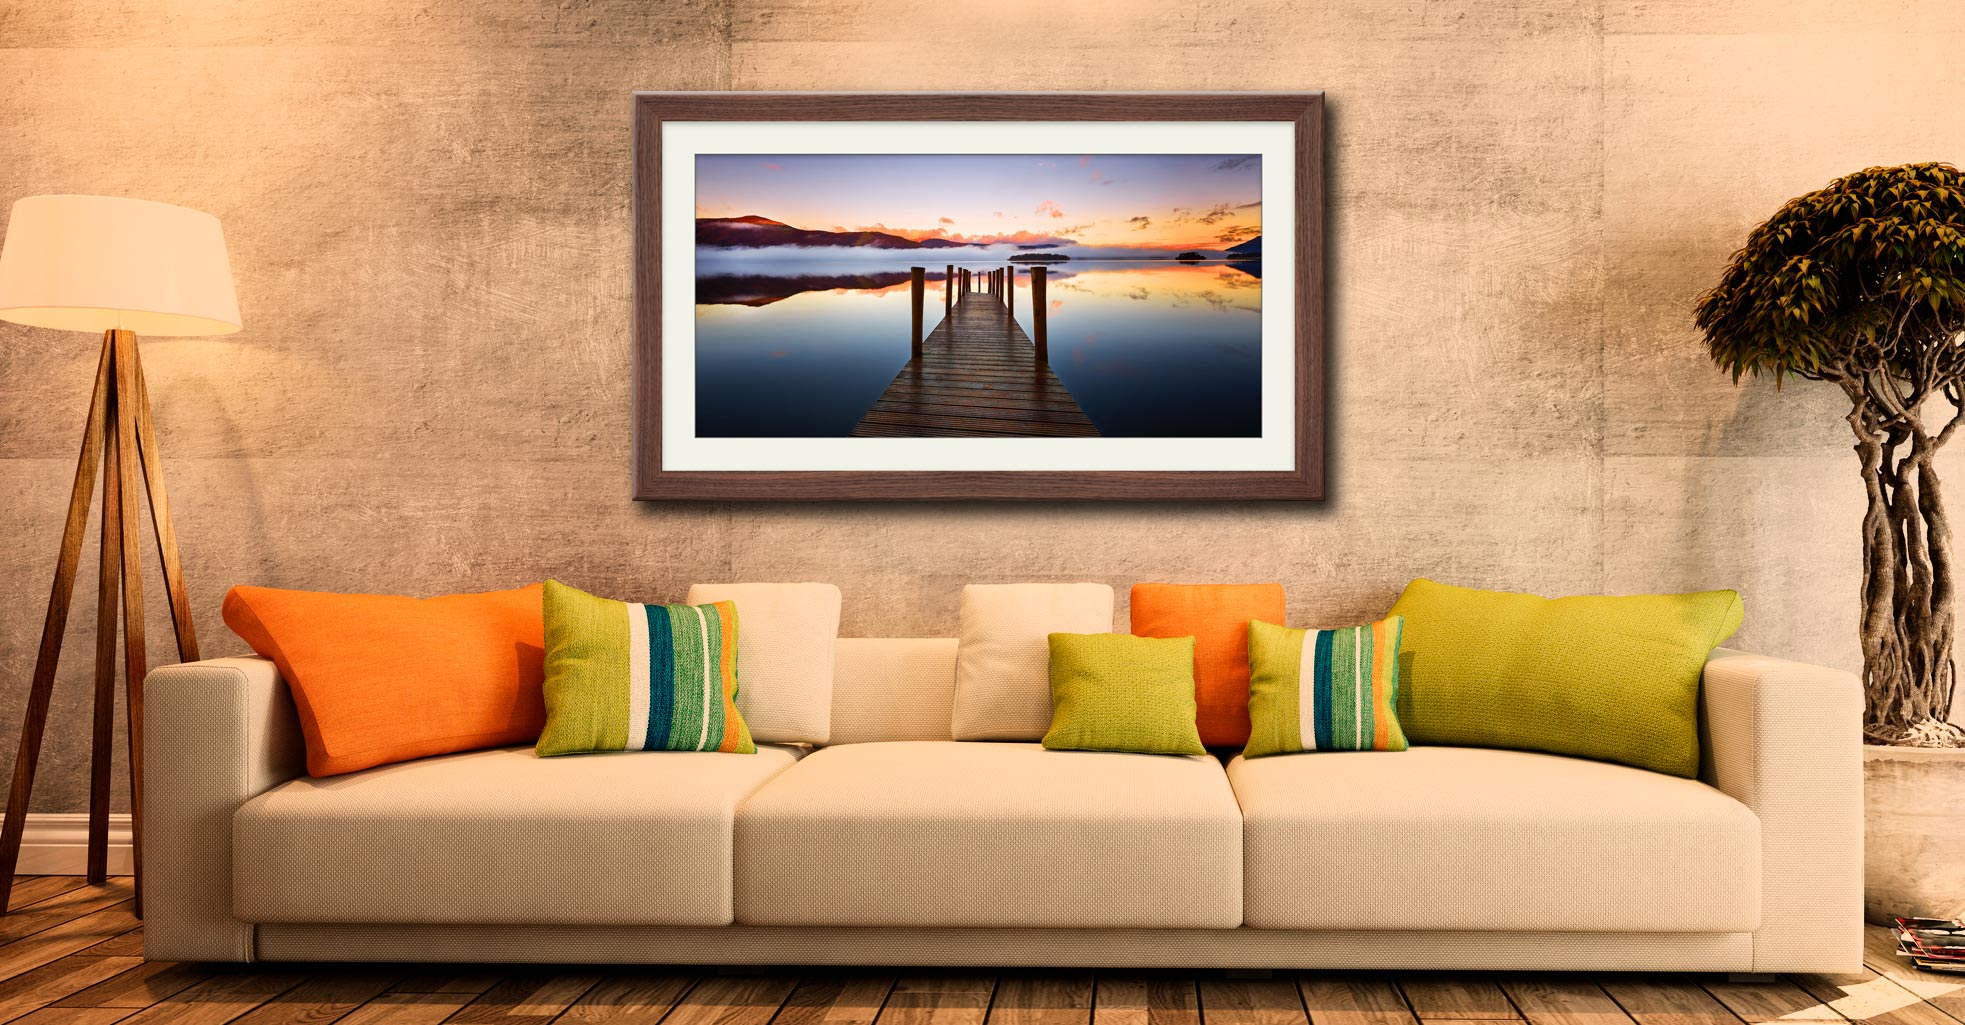 Ashness Jetty Dawn - Framed Print with Mount on Wall